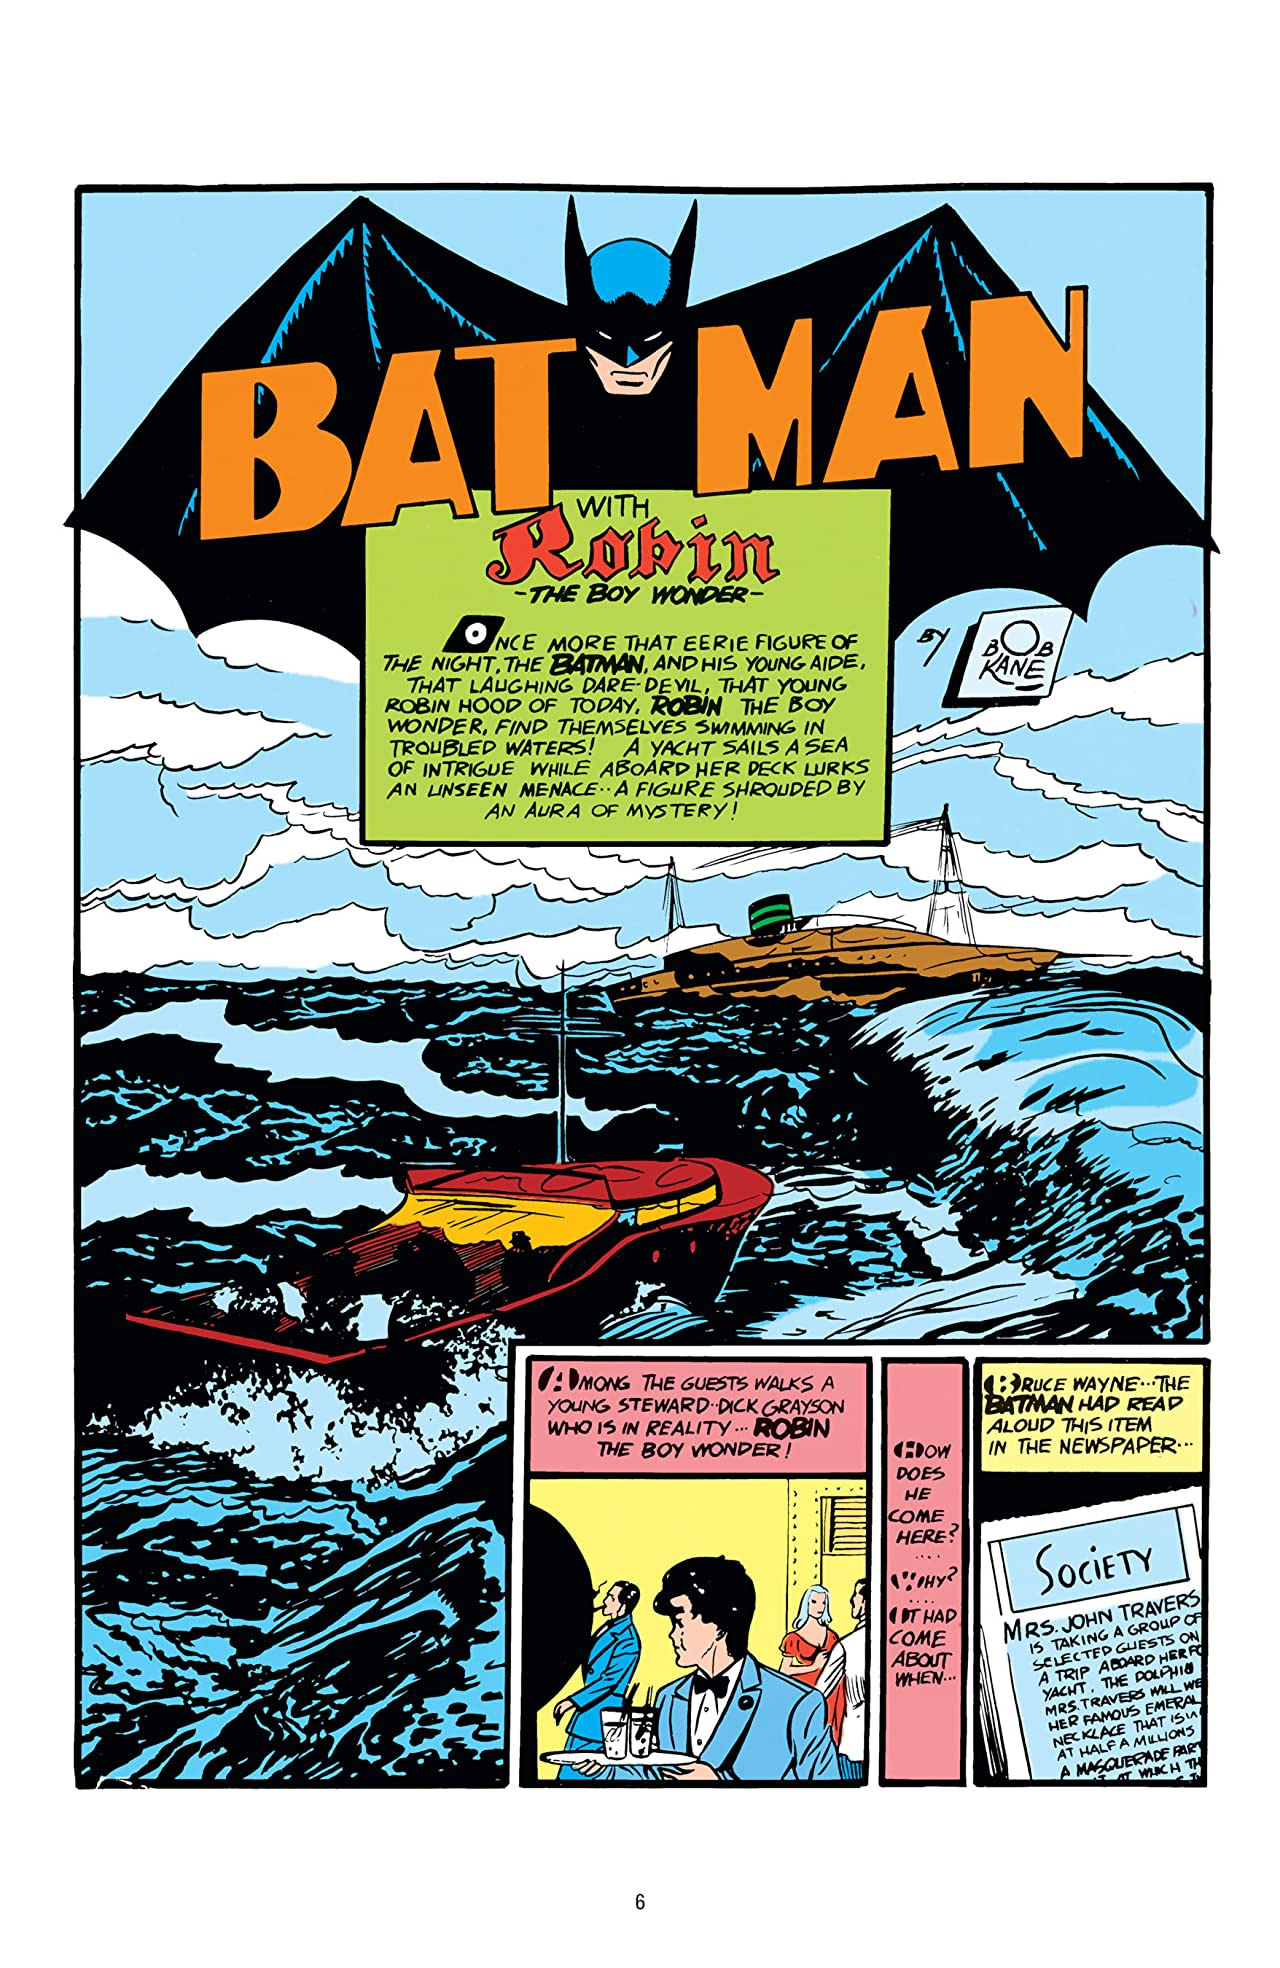 Batman: The Bat and the Cat: 80 Years of Romance